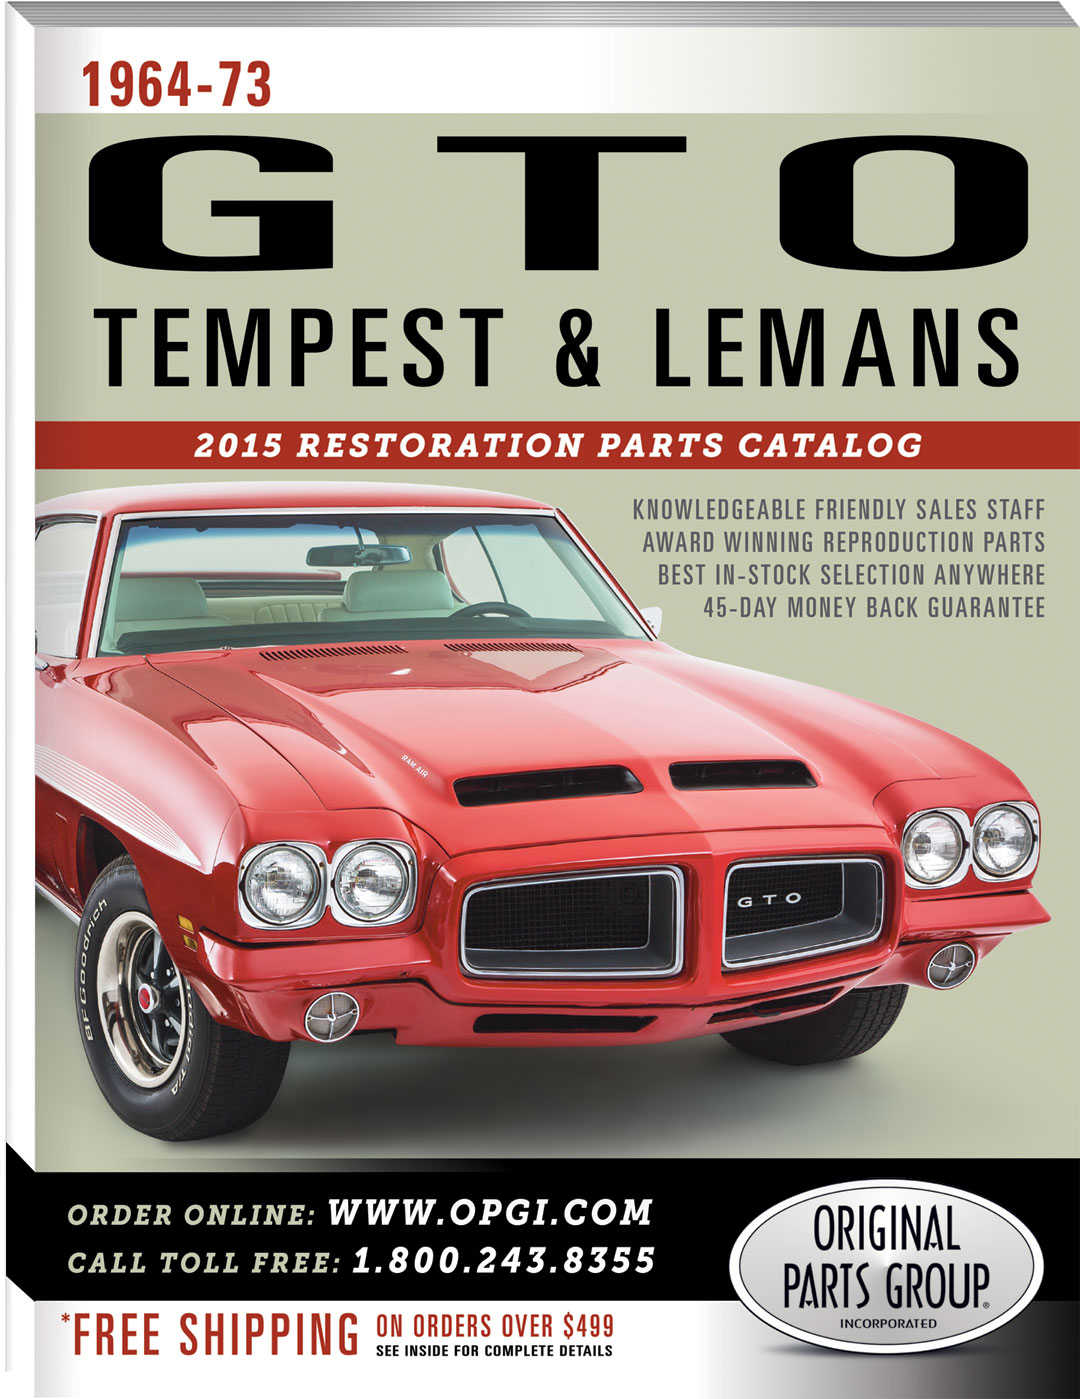 2015 1964-73 GTO and 1961-73 Tempest & Lemans Restoration